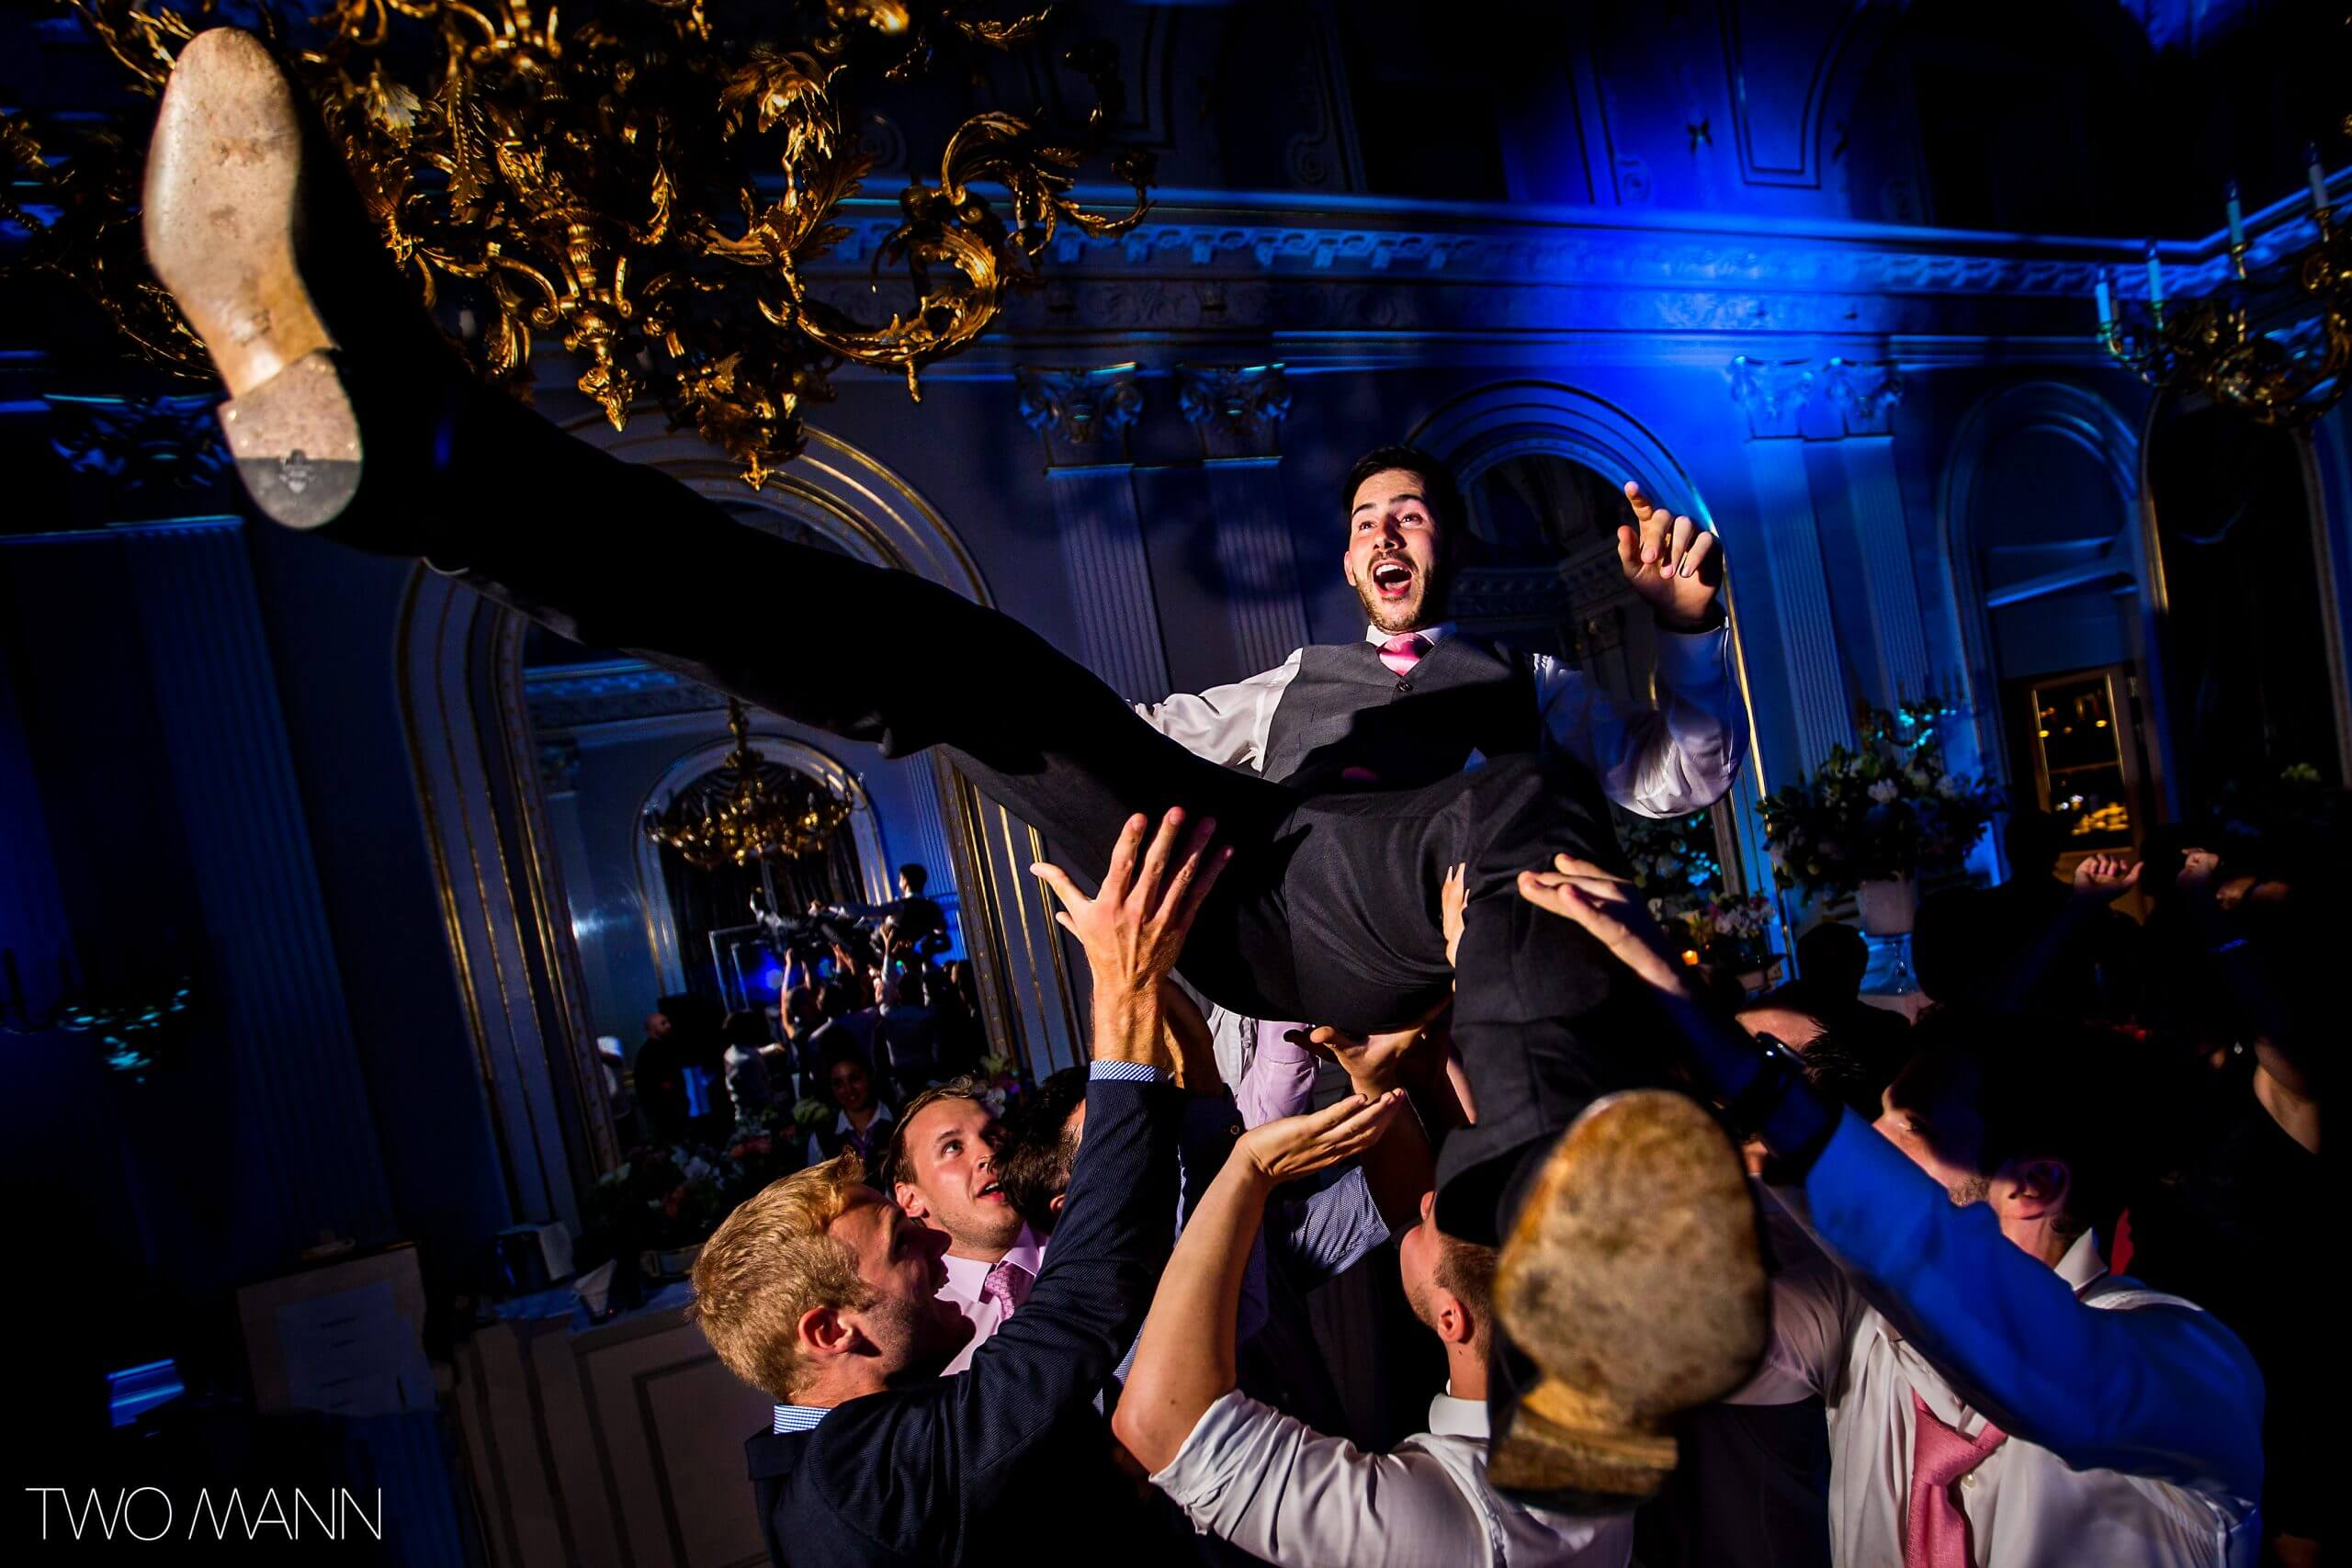 friends hold up a groom at a wedding reception